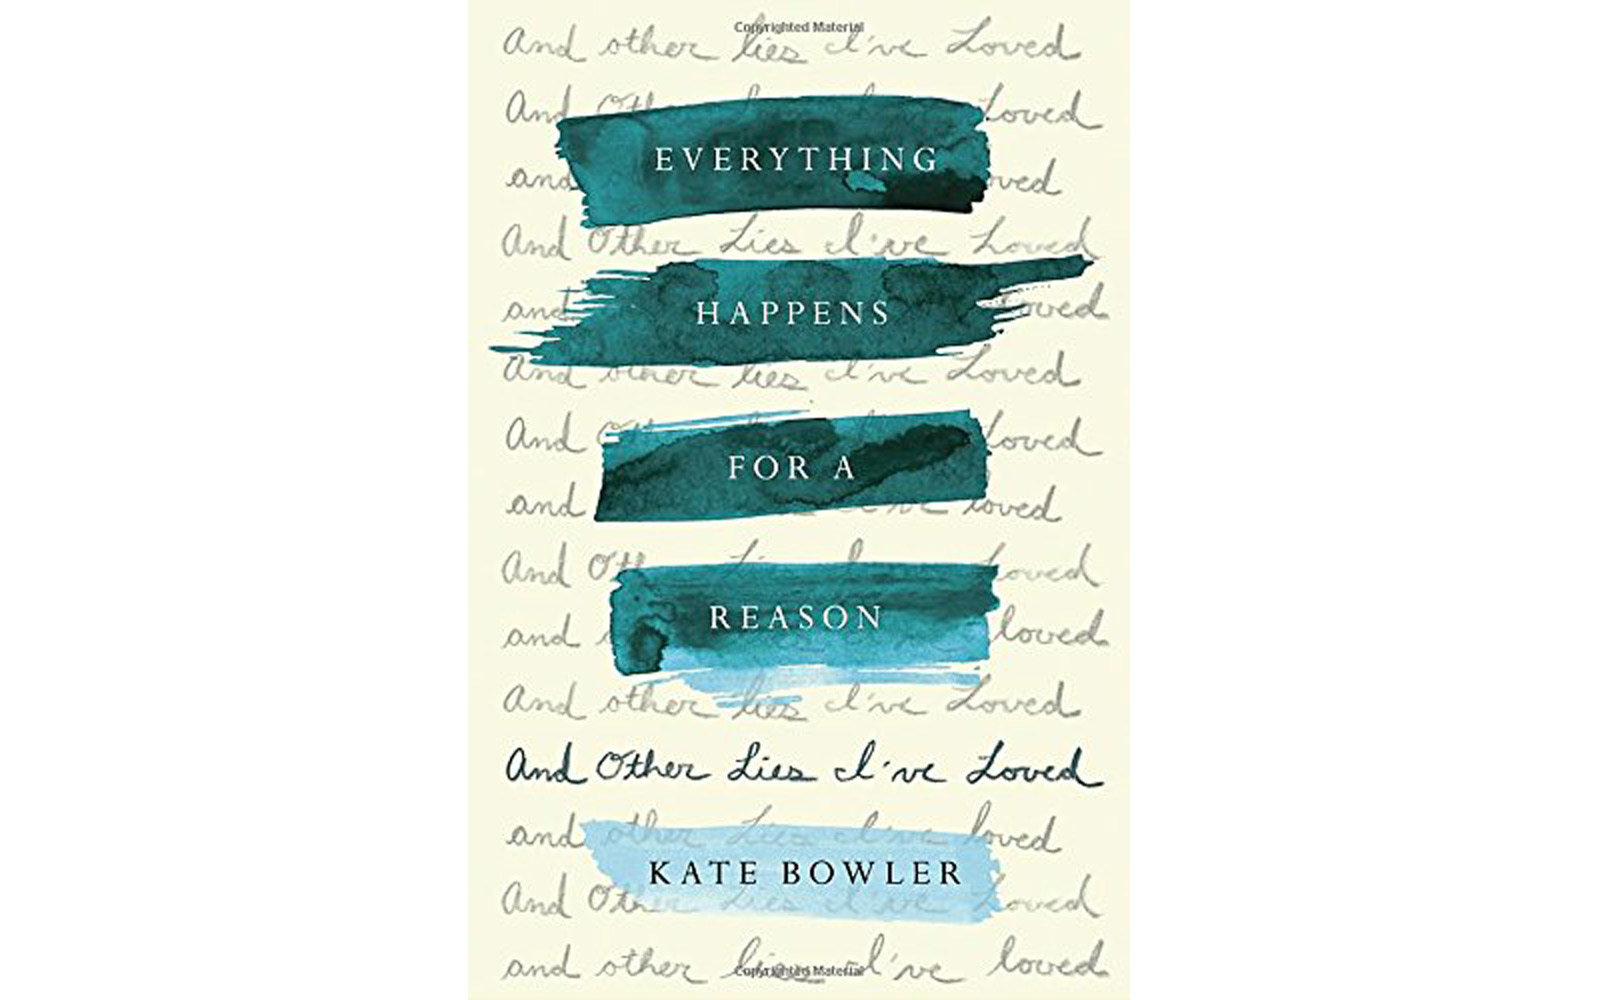 'Everything Happens For A Reason: And Other Lies I've Loved' by Kate Bowler